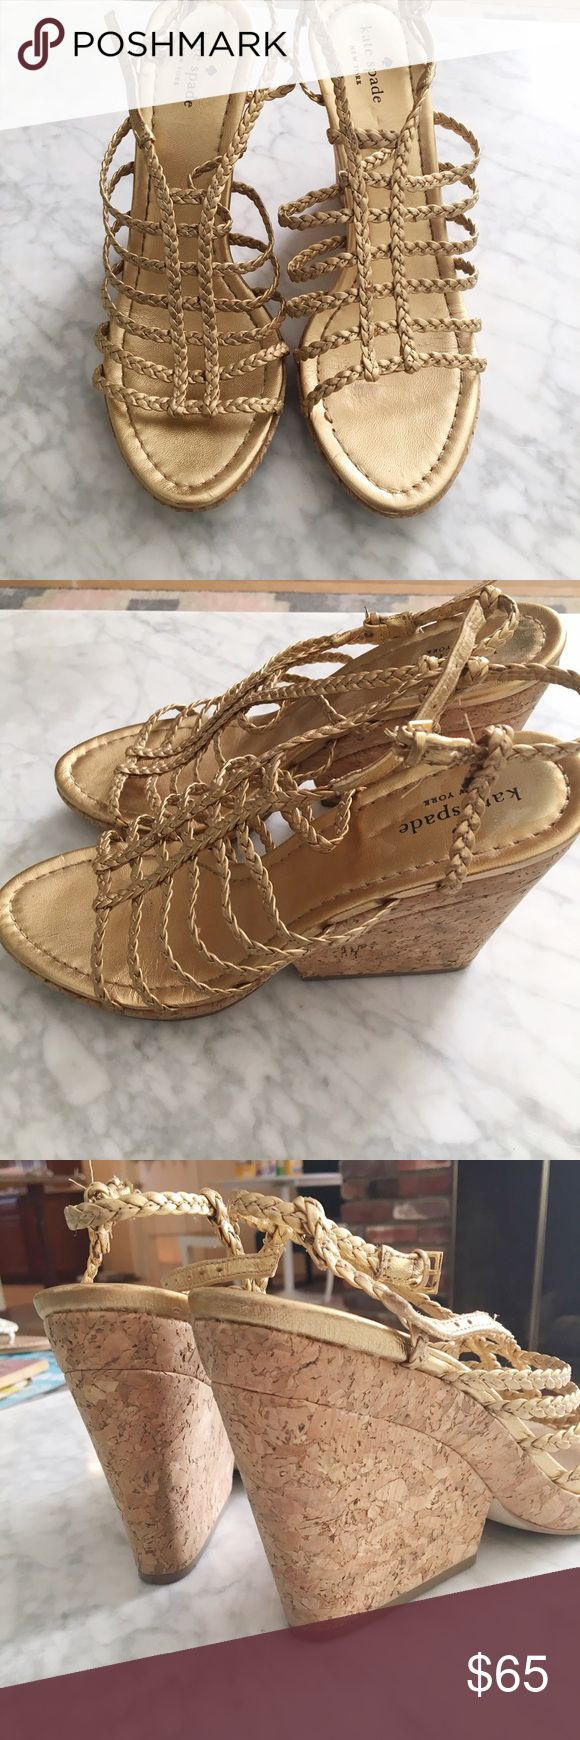 Kate Spade gold wedge shoes Sz 9.5 These are flirty and fun Kate Spade gold wedge shoes! They are Women's size 9.5 and have a beautiful gold straps along with a tan cork heel. Super comfy and look great with everything from jeans to dresses! They've been worn several times, but you can really only see any signs of wear on the soles. Please see the pictures and ask ash questions! kate spade Shoes Wedges